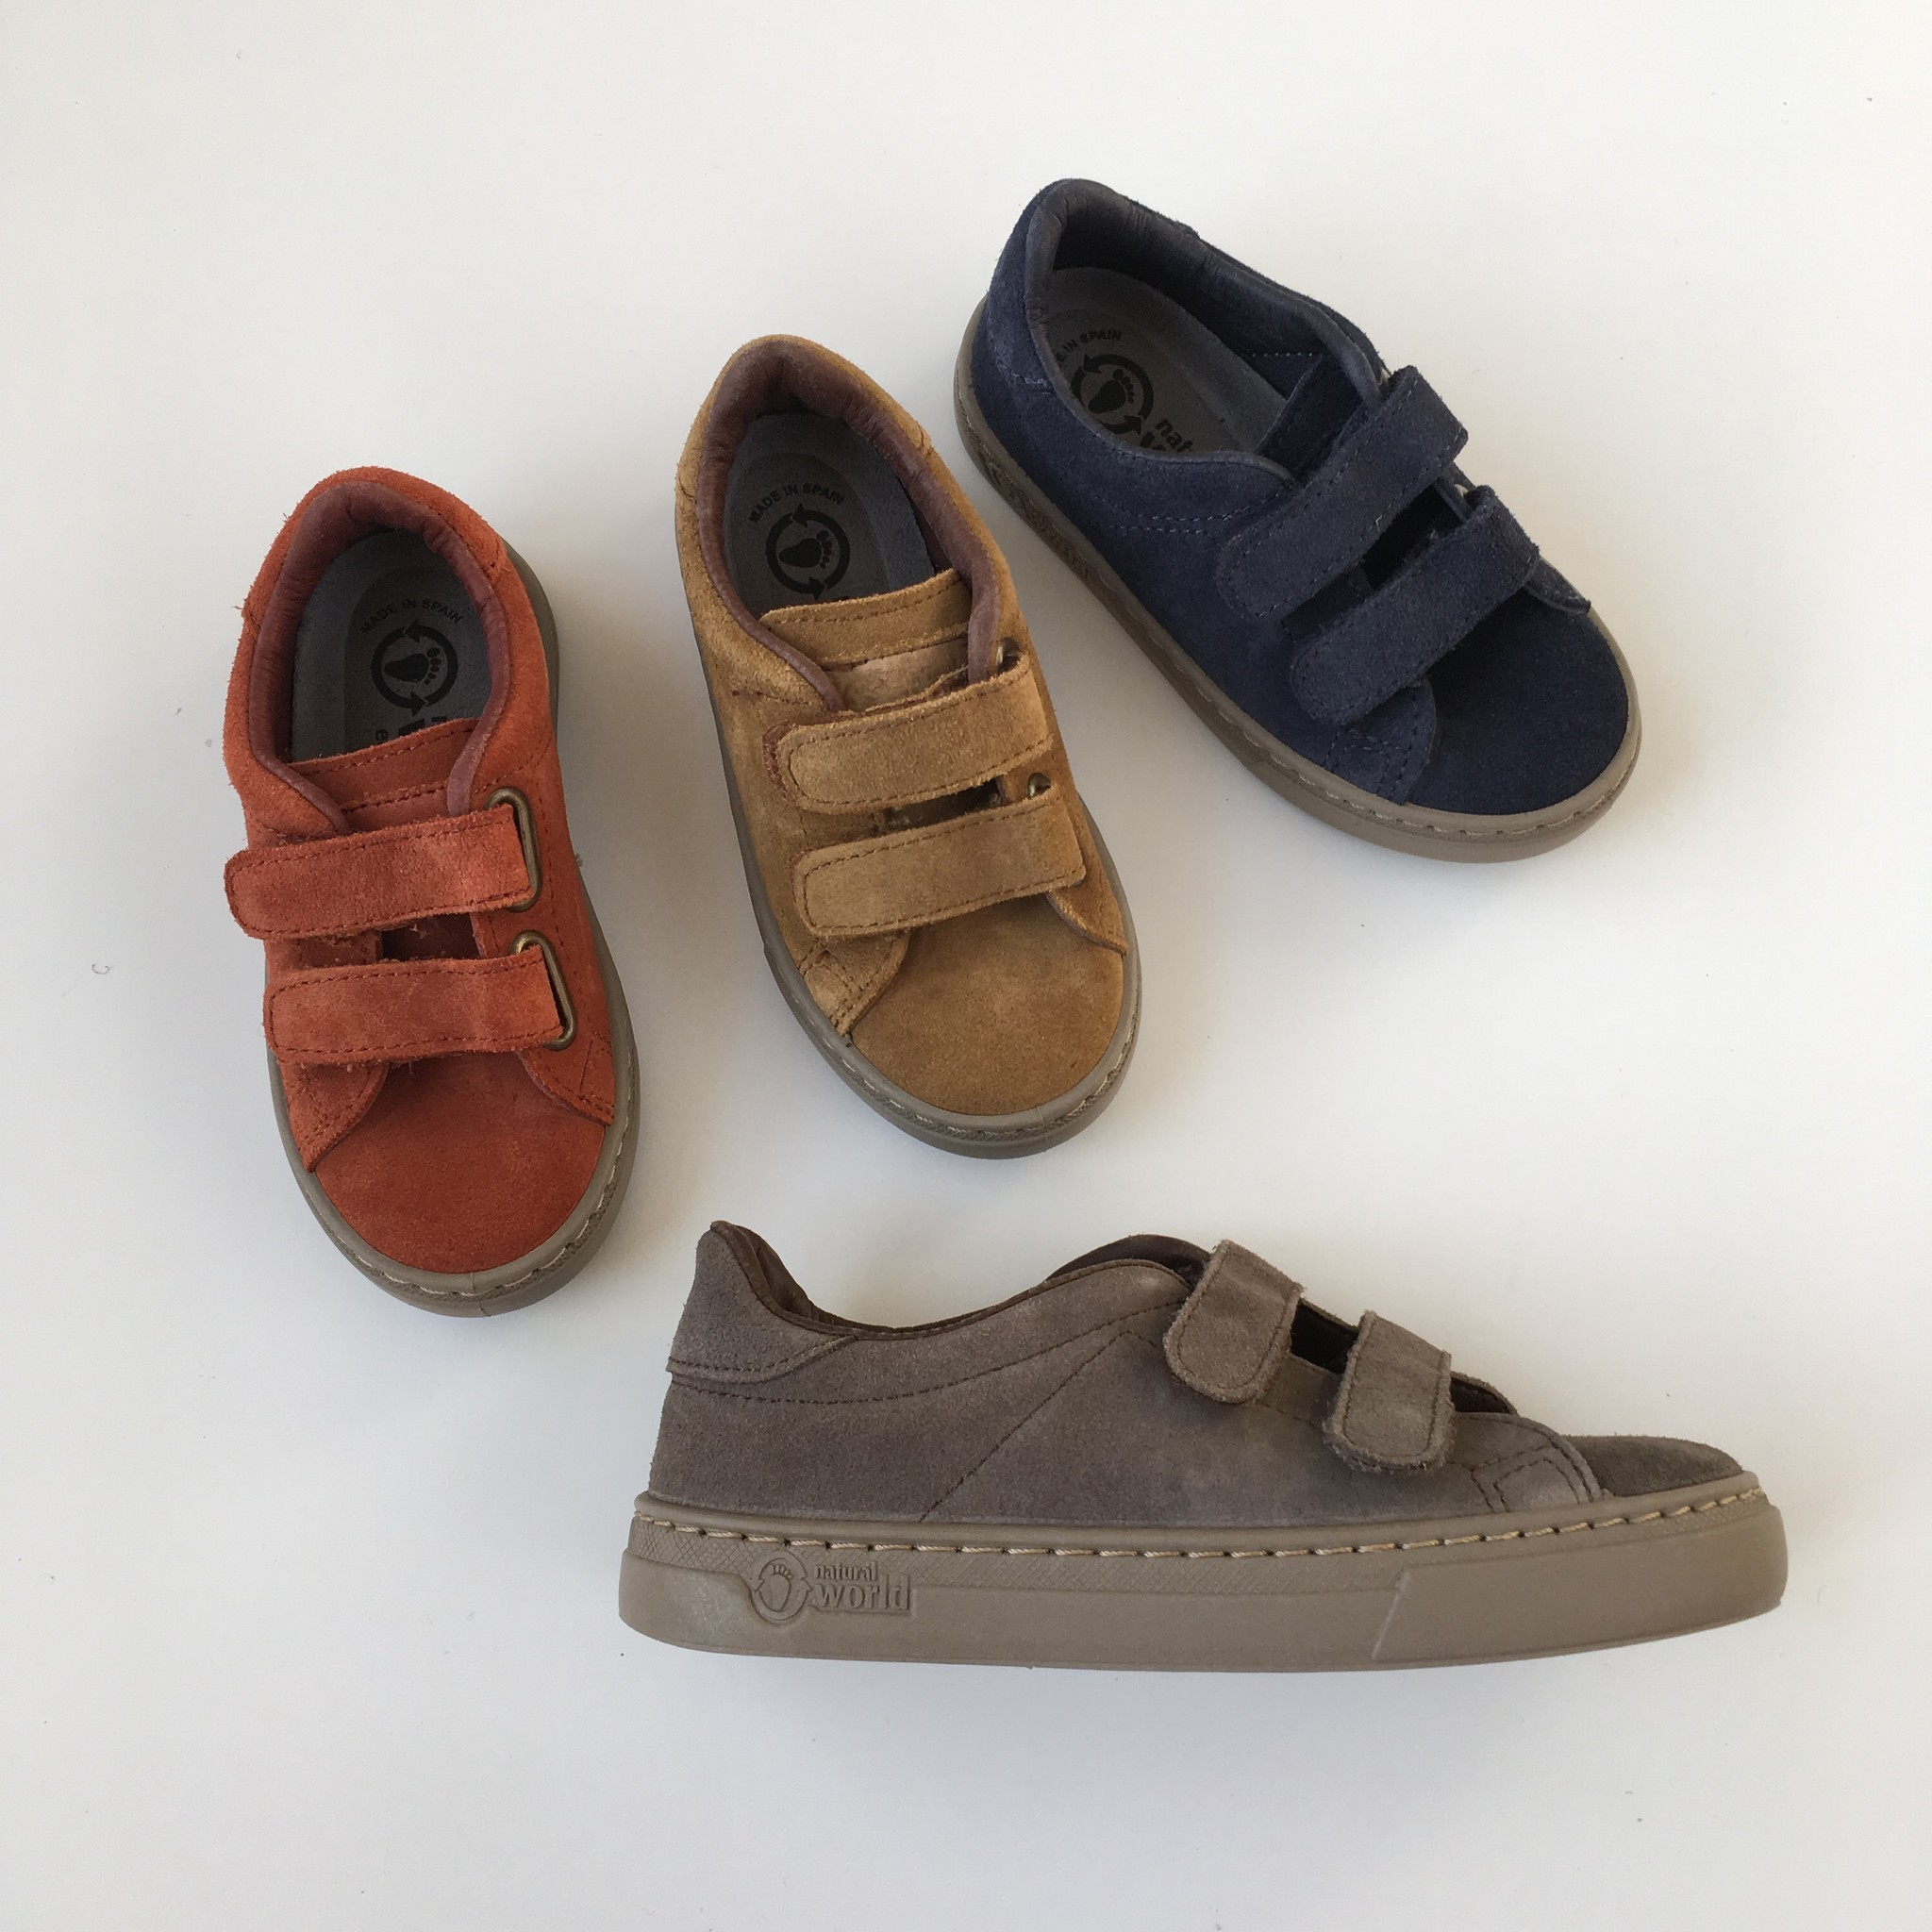 NATURAL WORLD suede eco kids sneakers TEO  - 100% natural rubber sole - rusty orange - 25 to 38